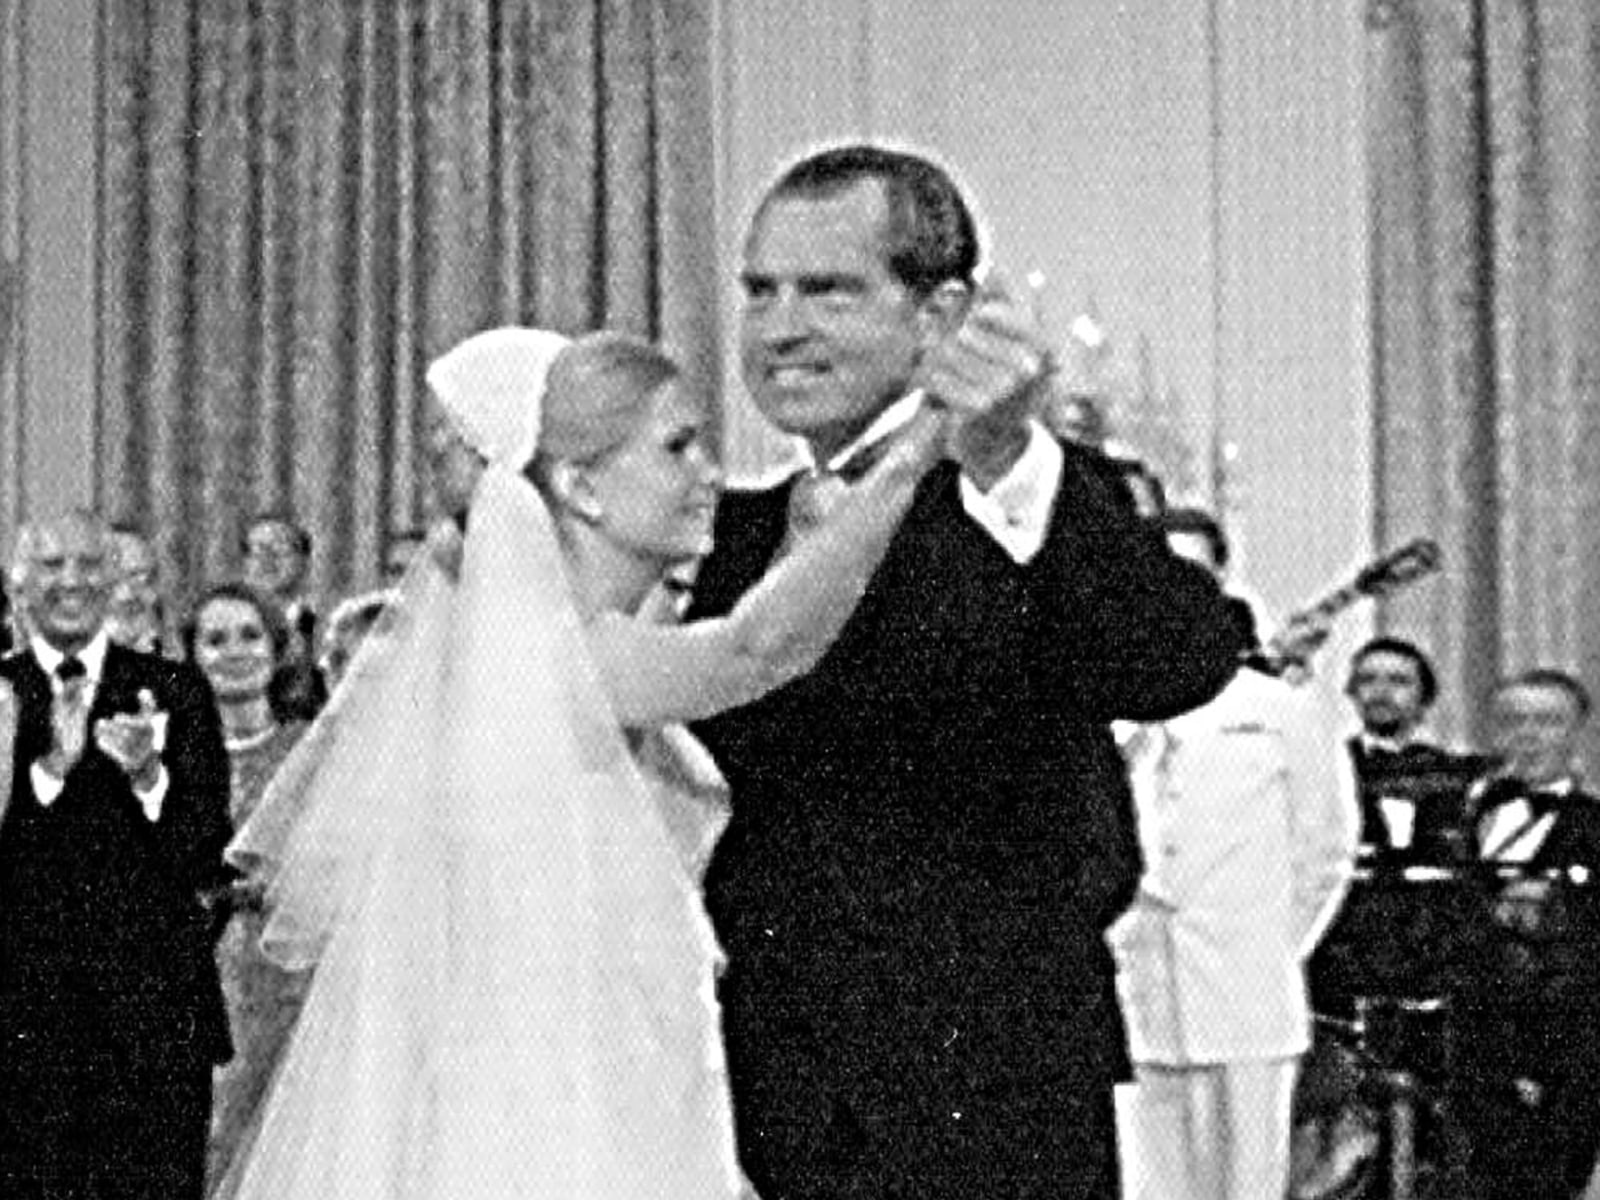 President Richard Nixon dances with his daughter